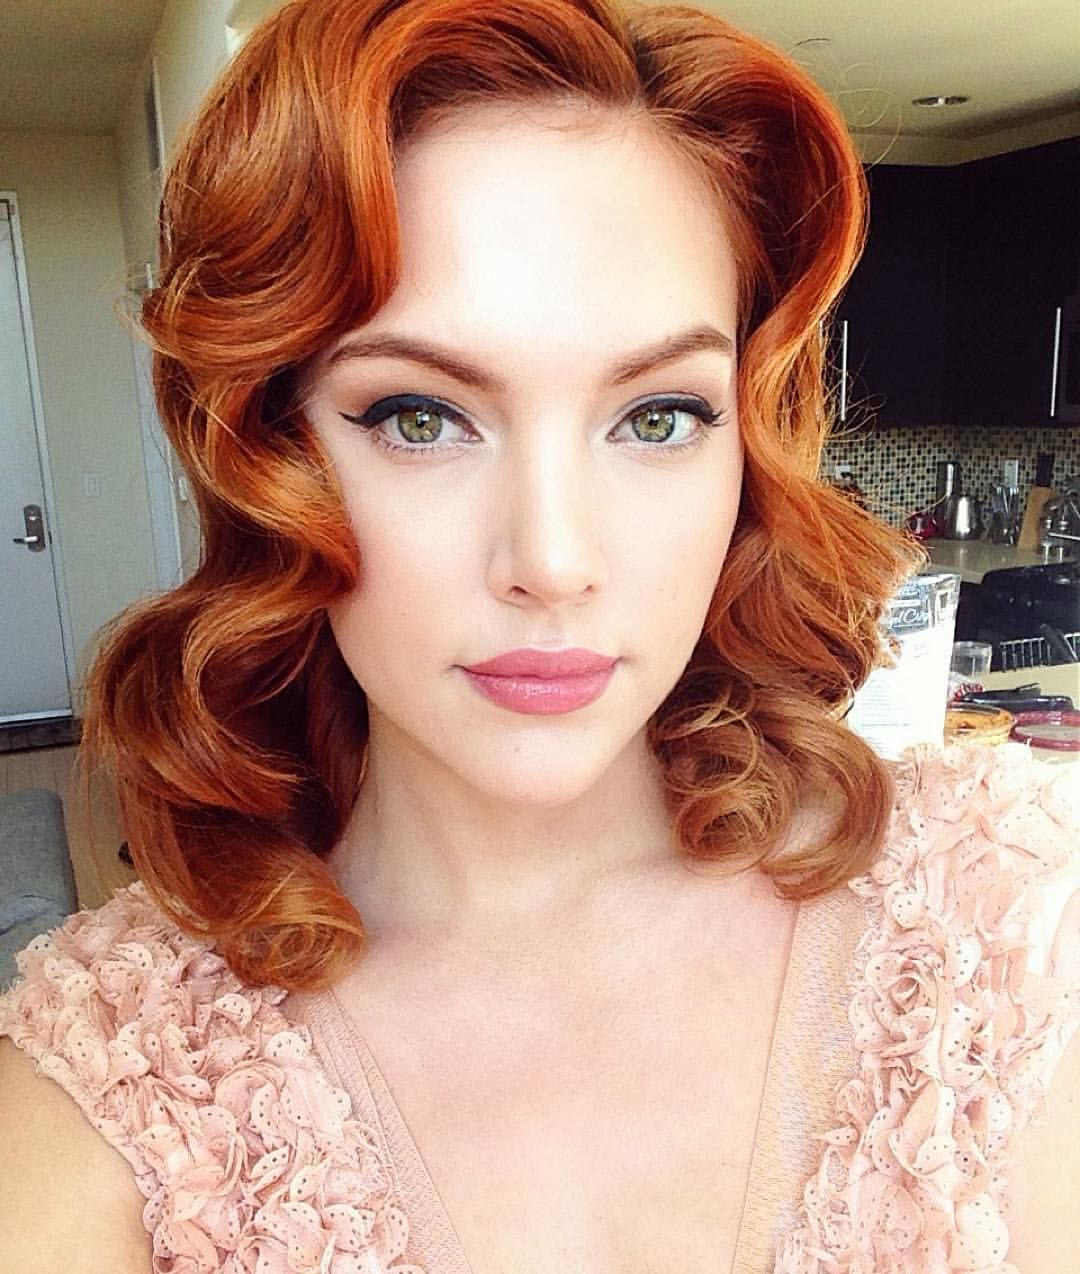 Pin by Alicia Jarzabek on My Style  Redhead makeup, Amazing